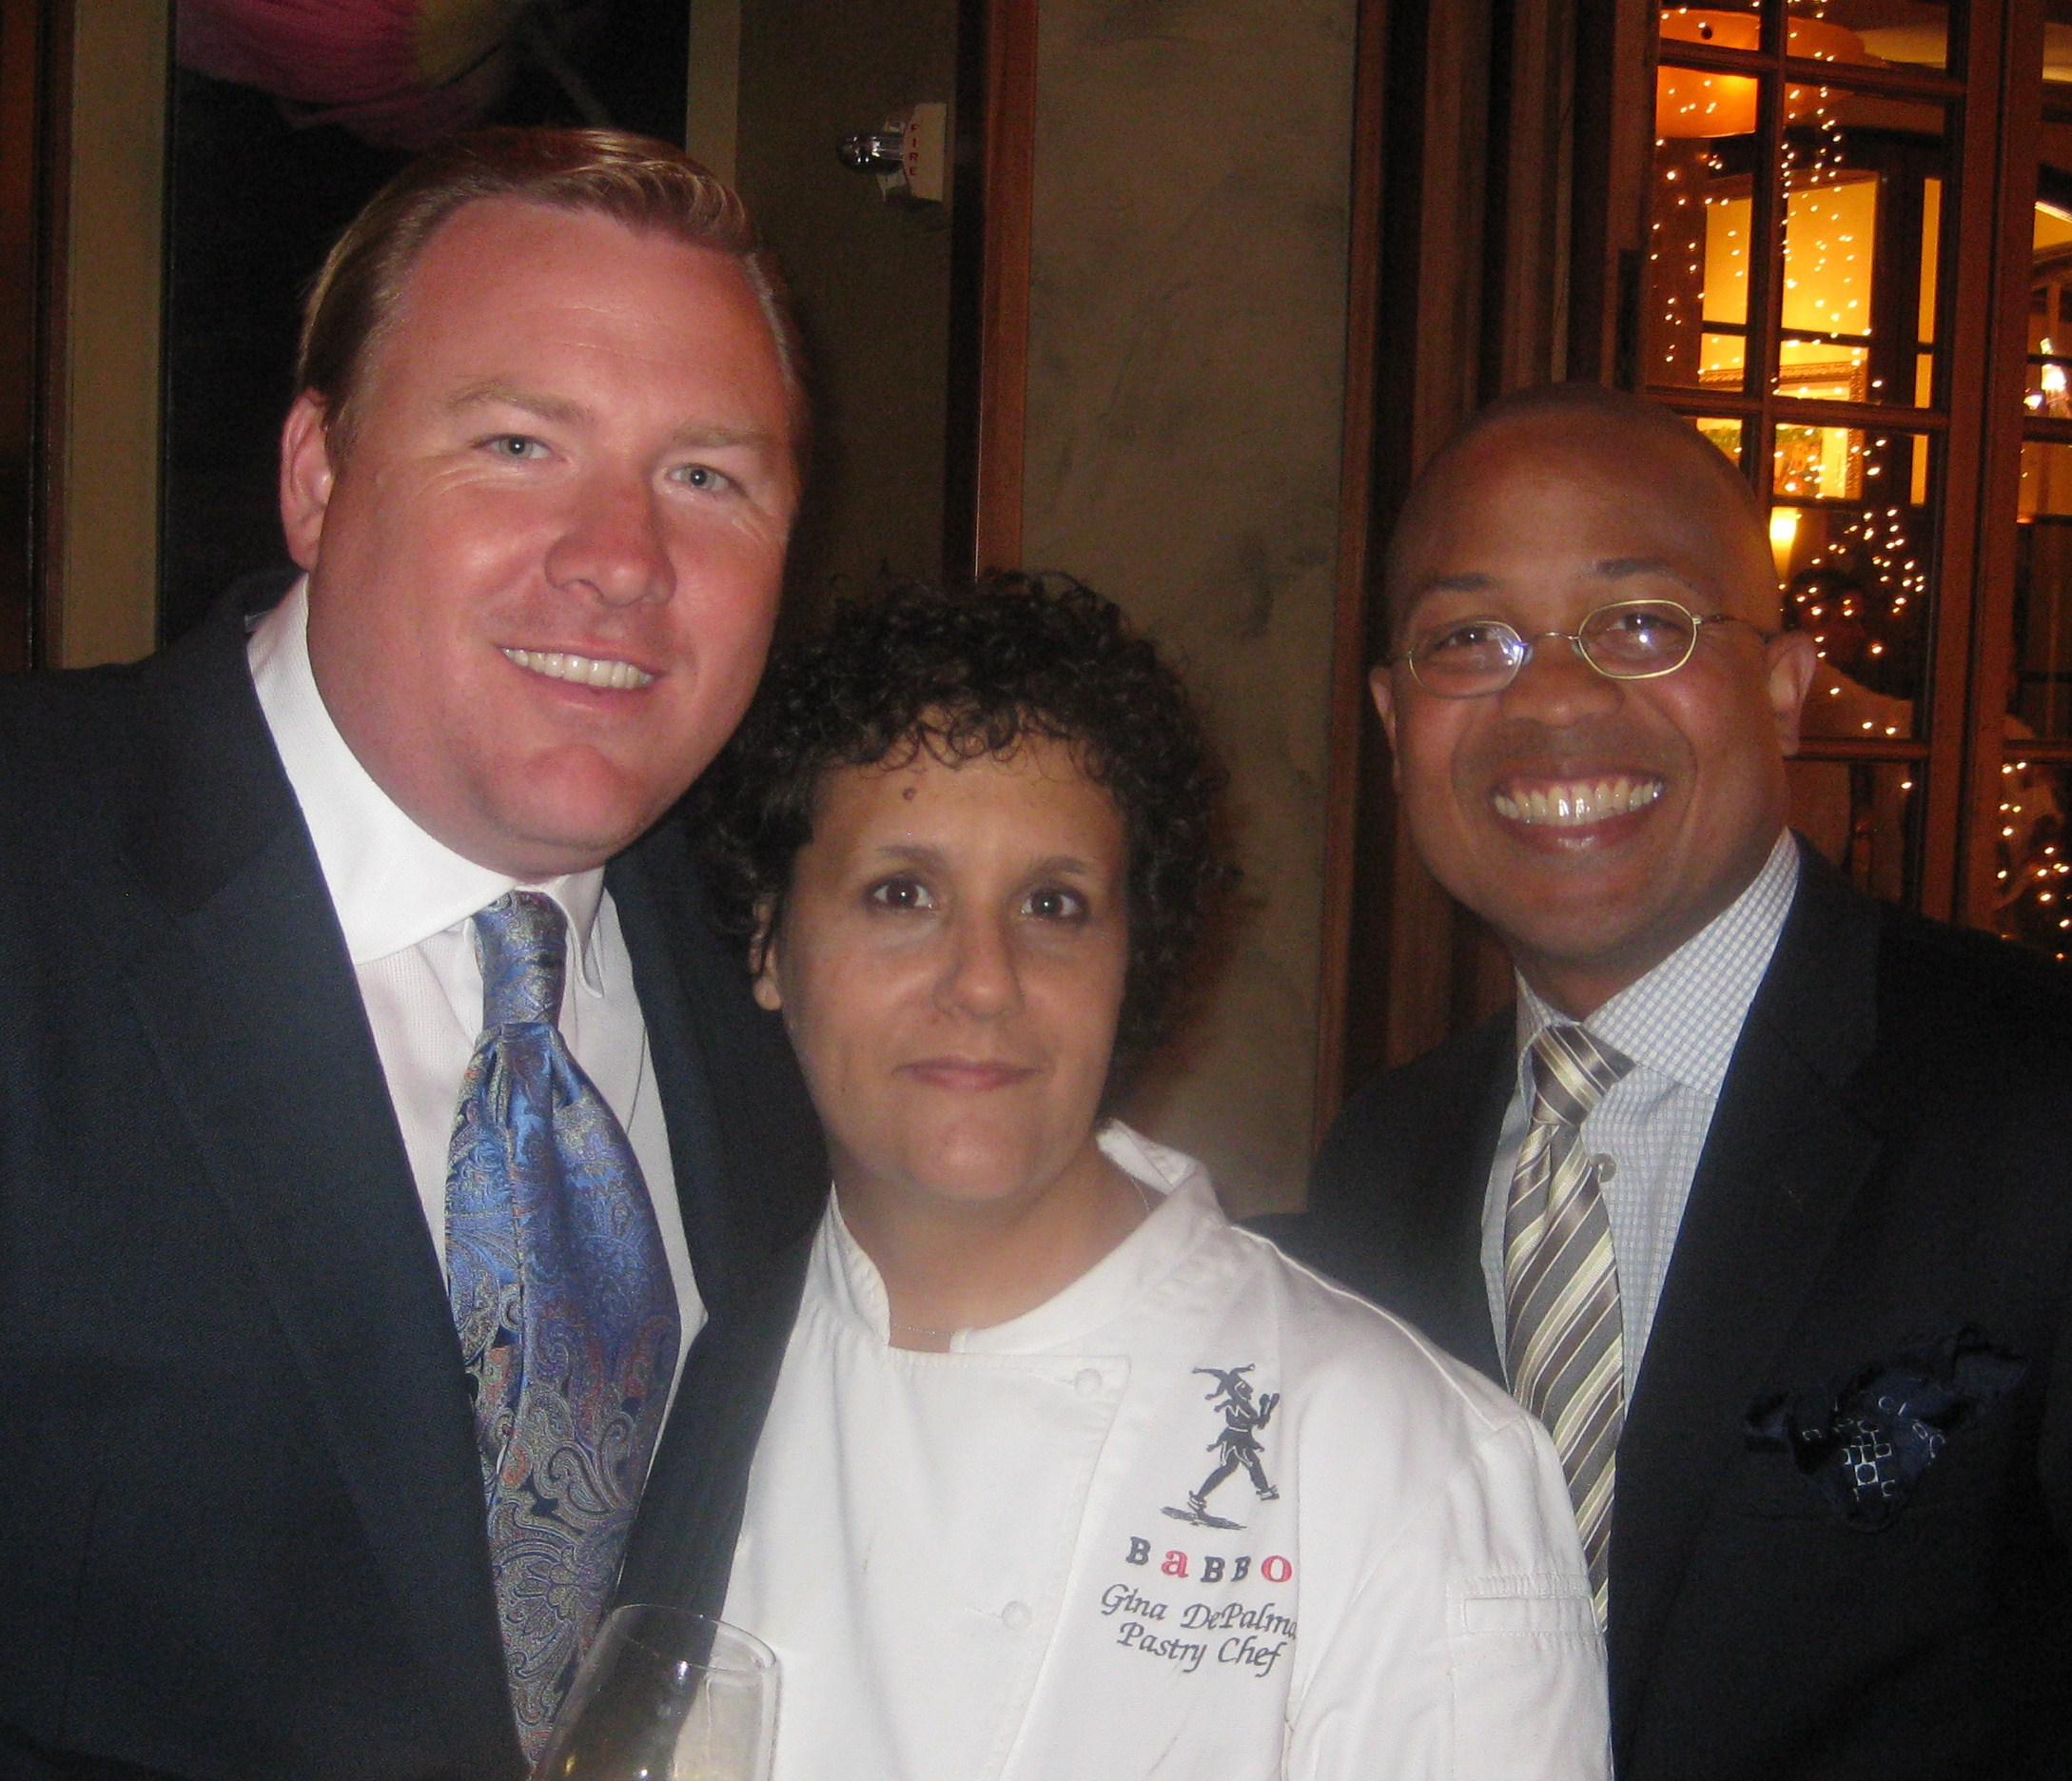 Robert Weakley, President of Pebble Beach Food & Wine, with pastry chef Gina DePalma from Babbo